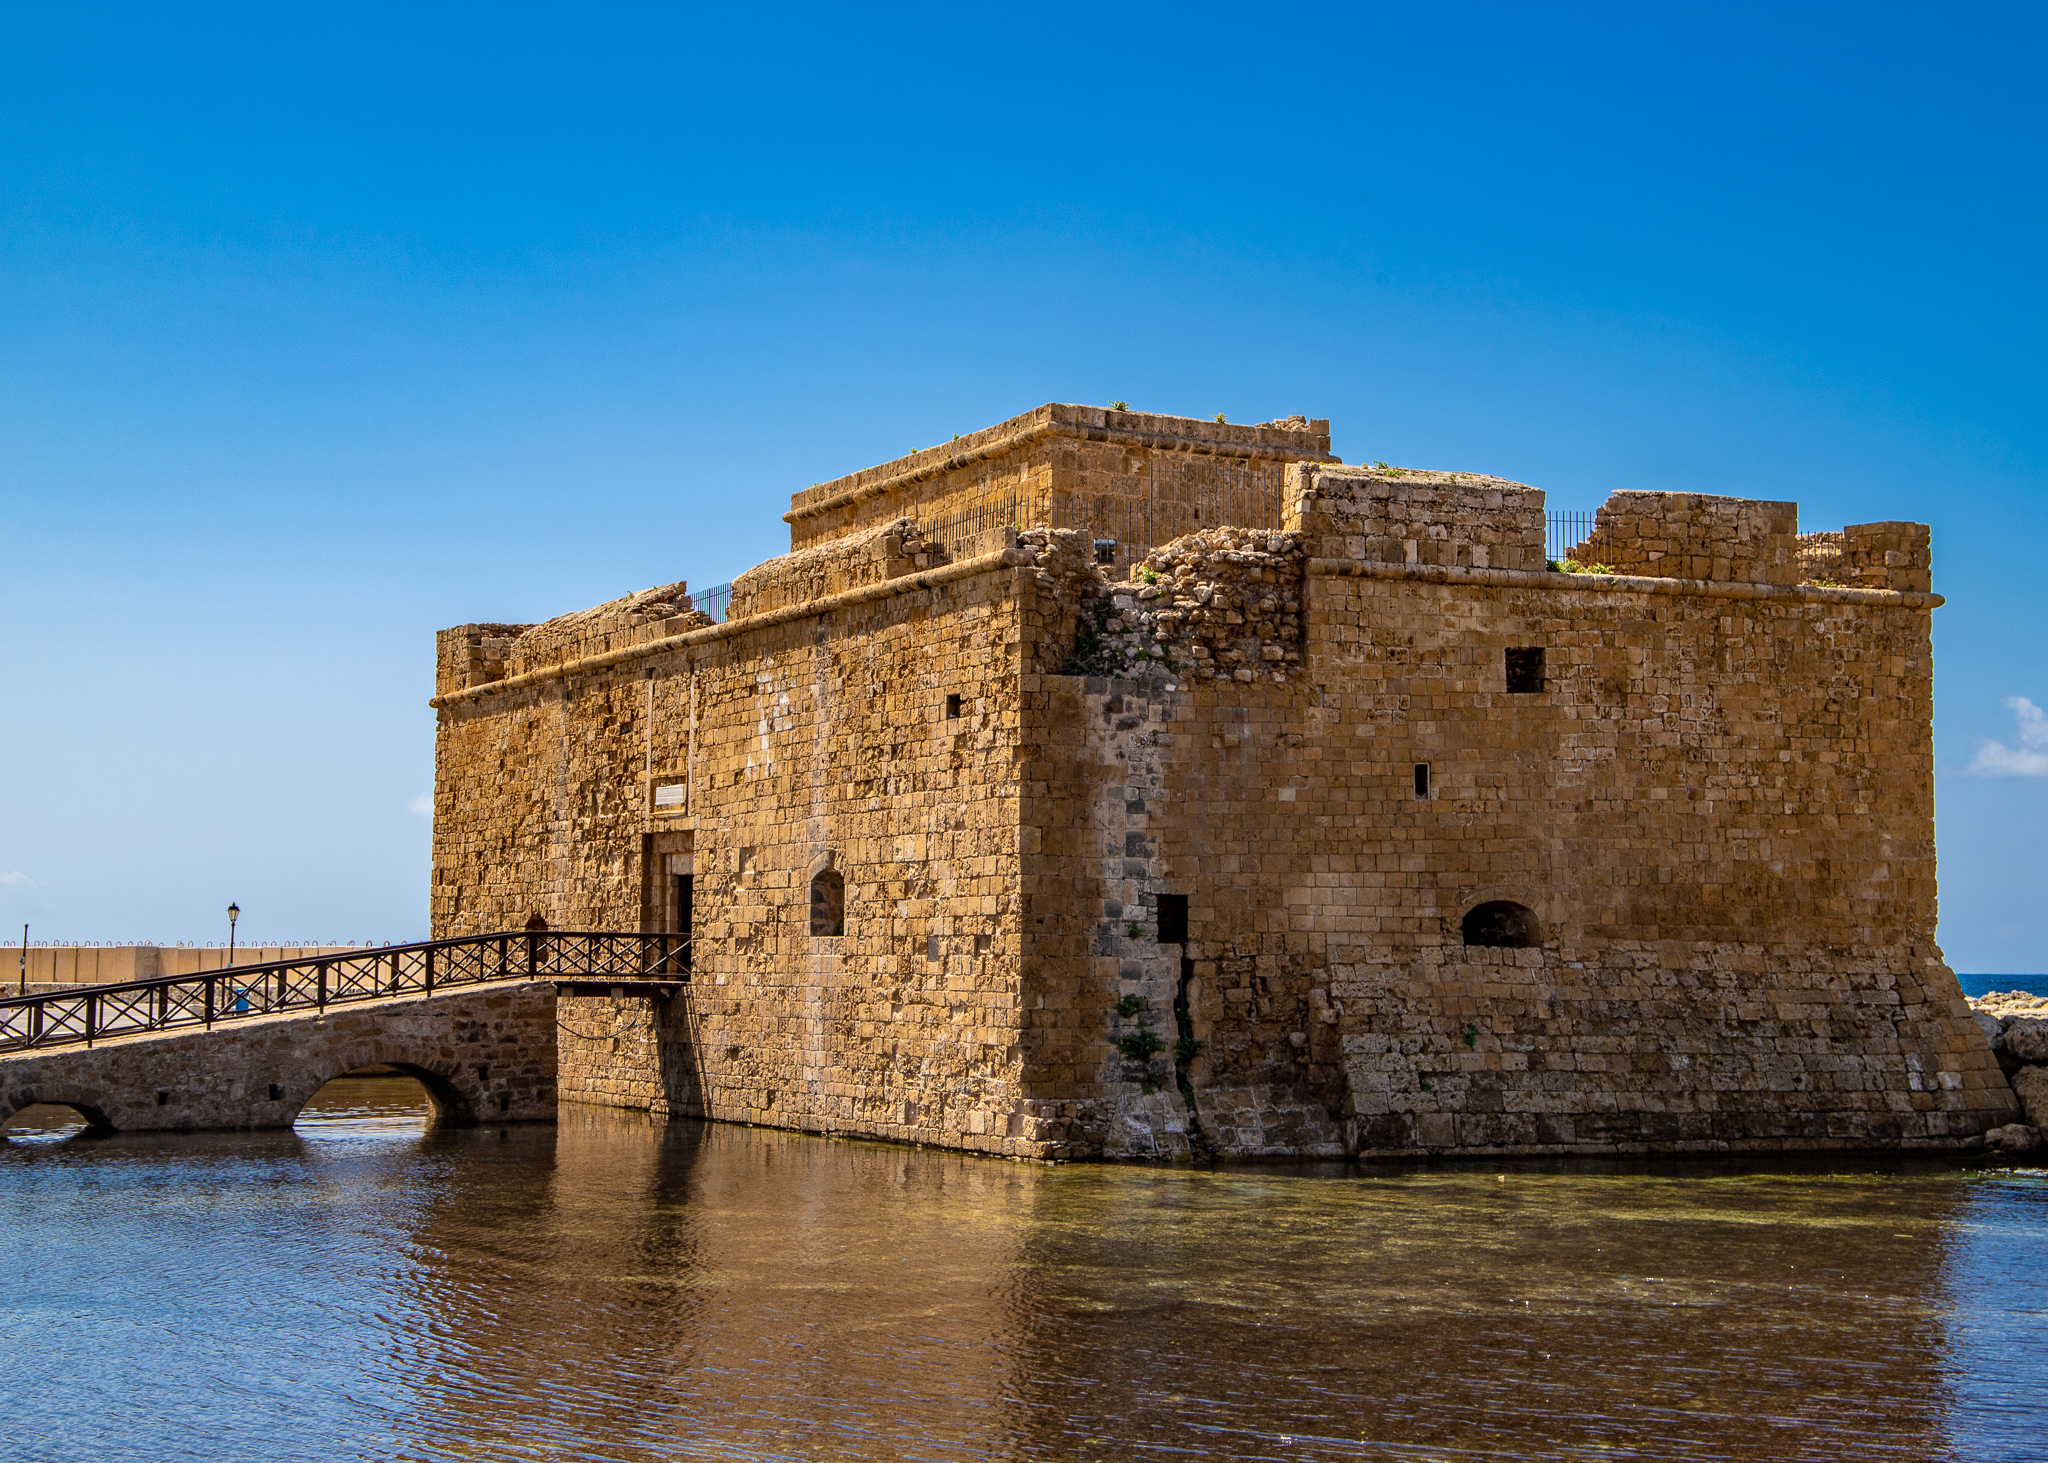 Pafos Castle with accompanying moat